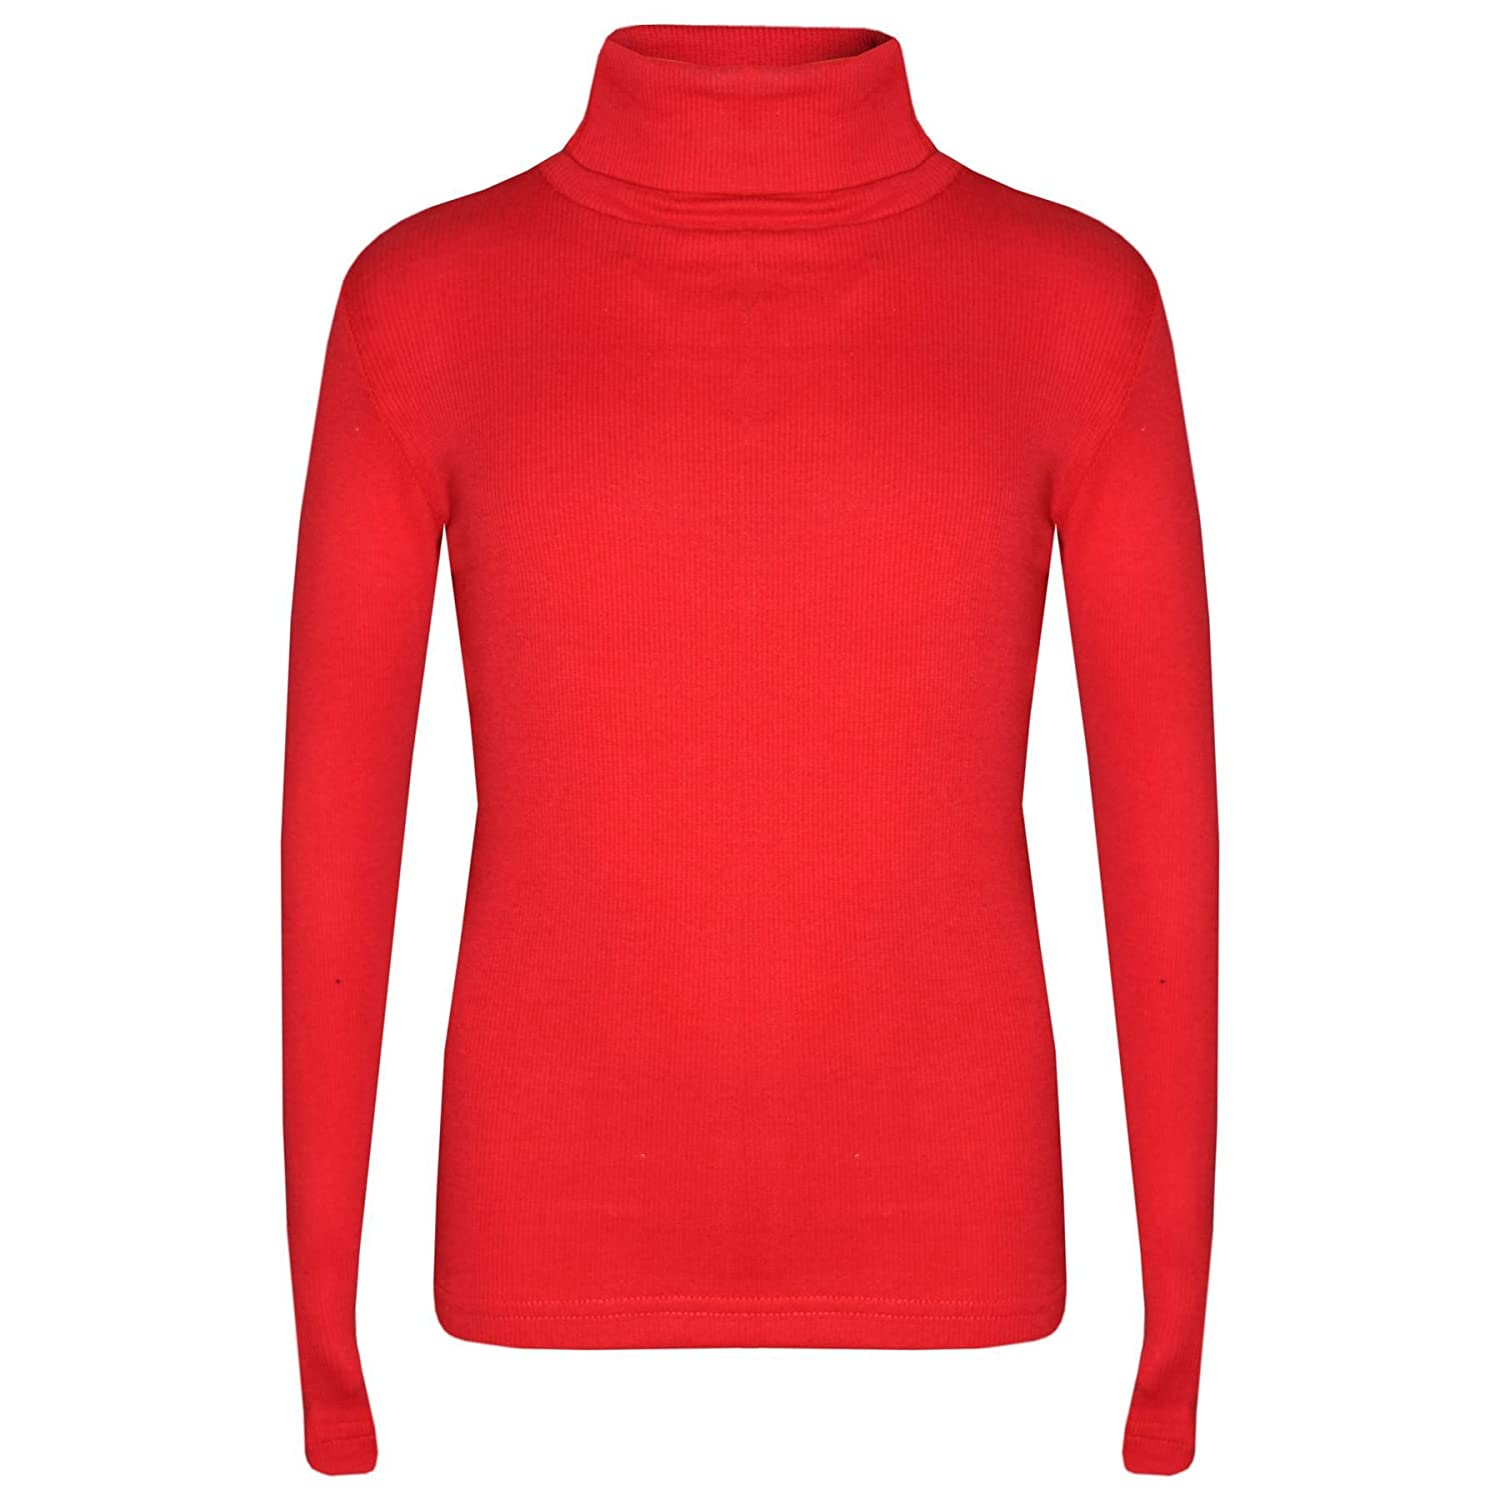 A2Z 4 Kids® Kids Girls Polo Neck T Shirt Top Designer's Thick Cotton Turtleneck Fashion Long Sleeves Tops New Age 2 3 4 5 6 7 8 9 10 11 12 13 Years